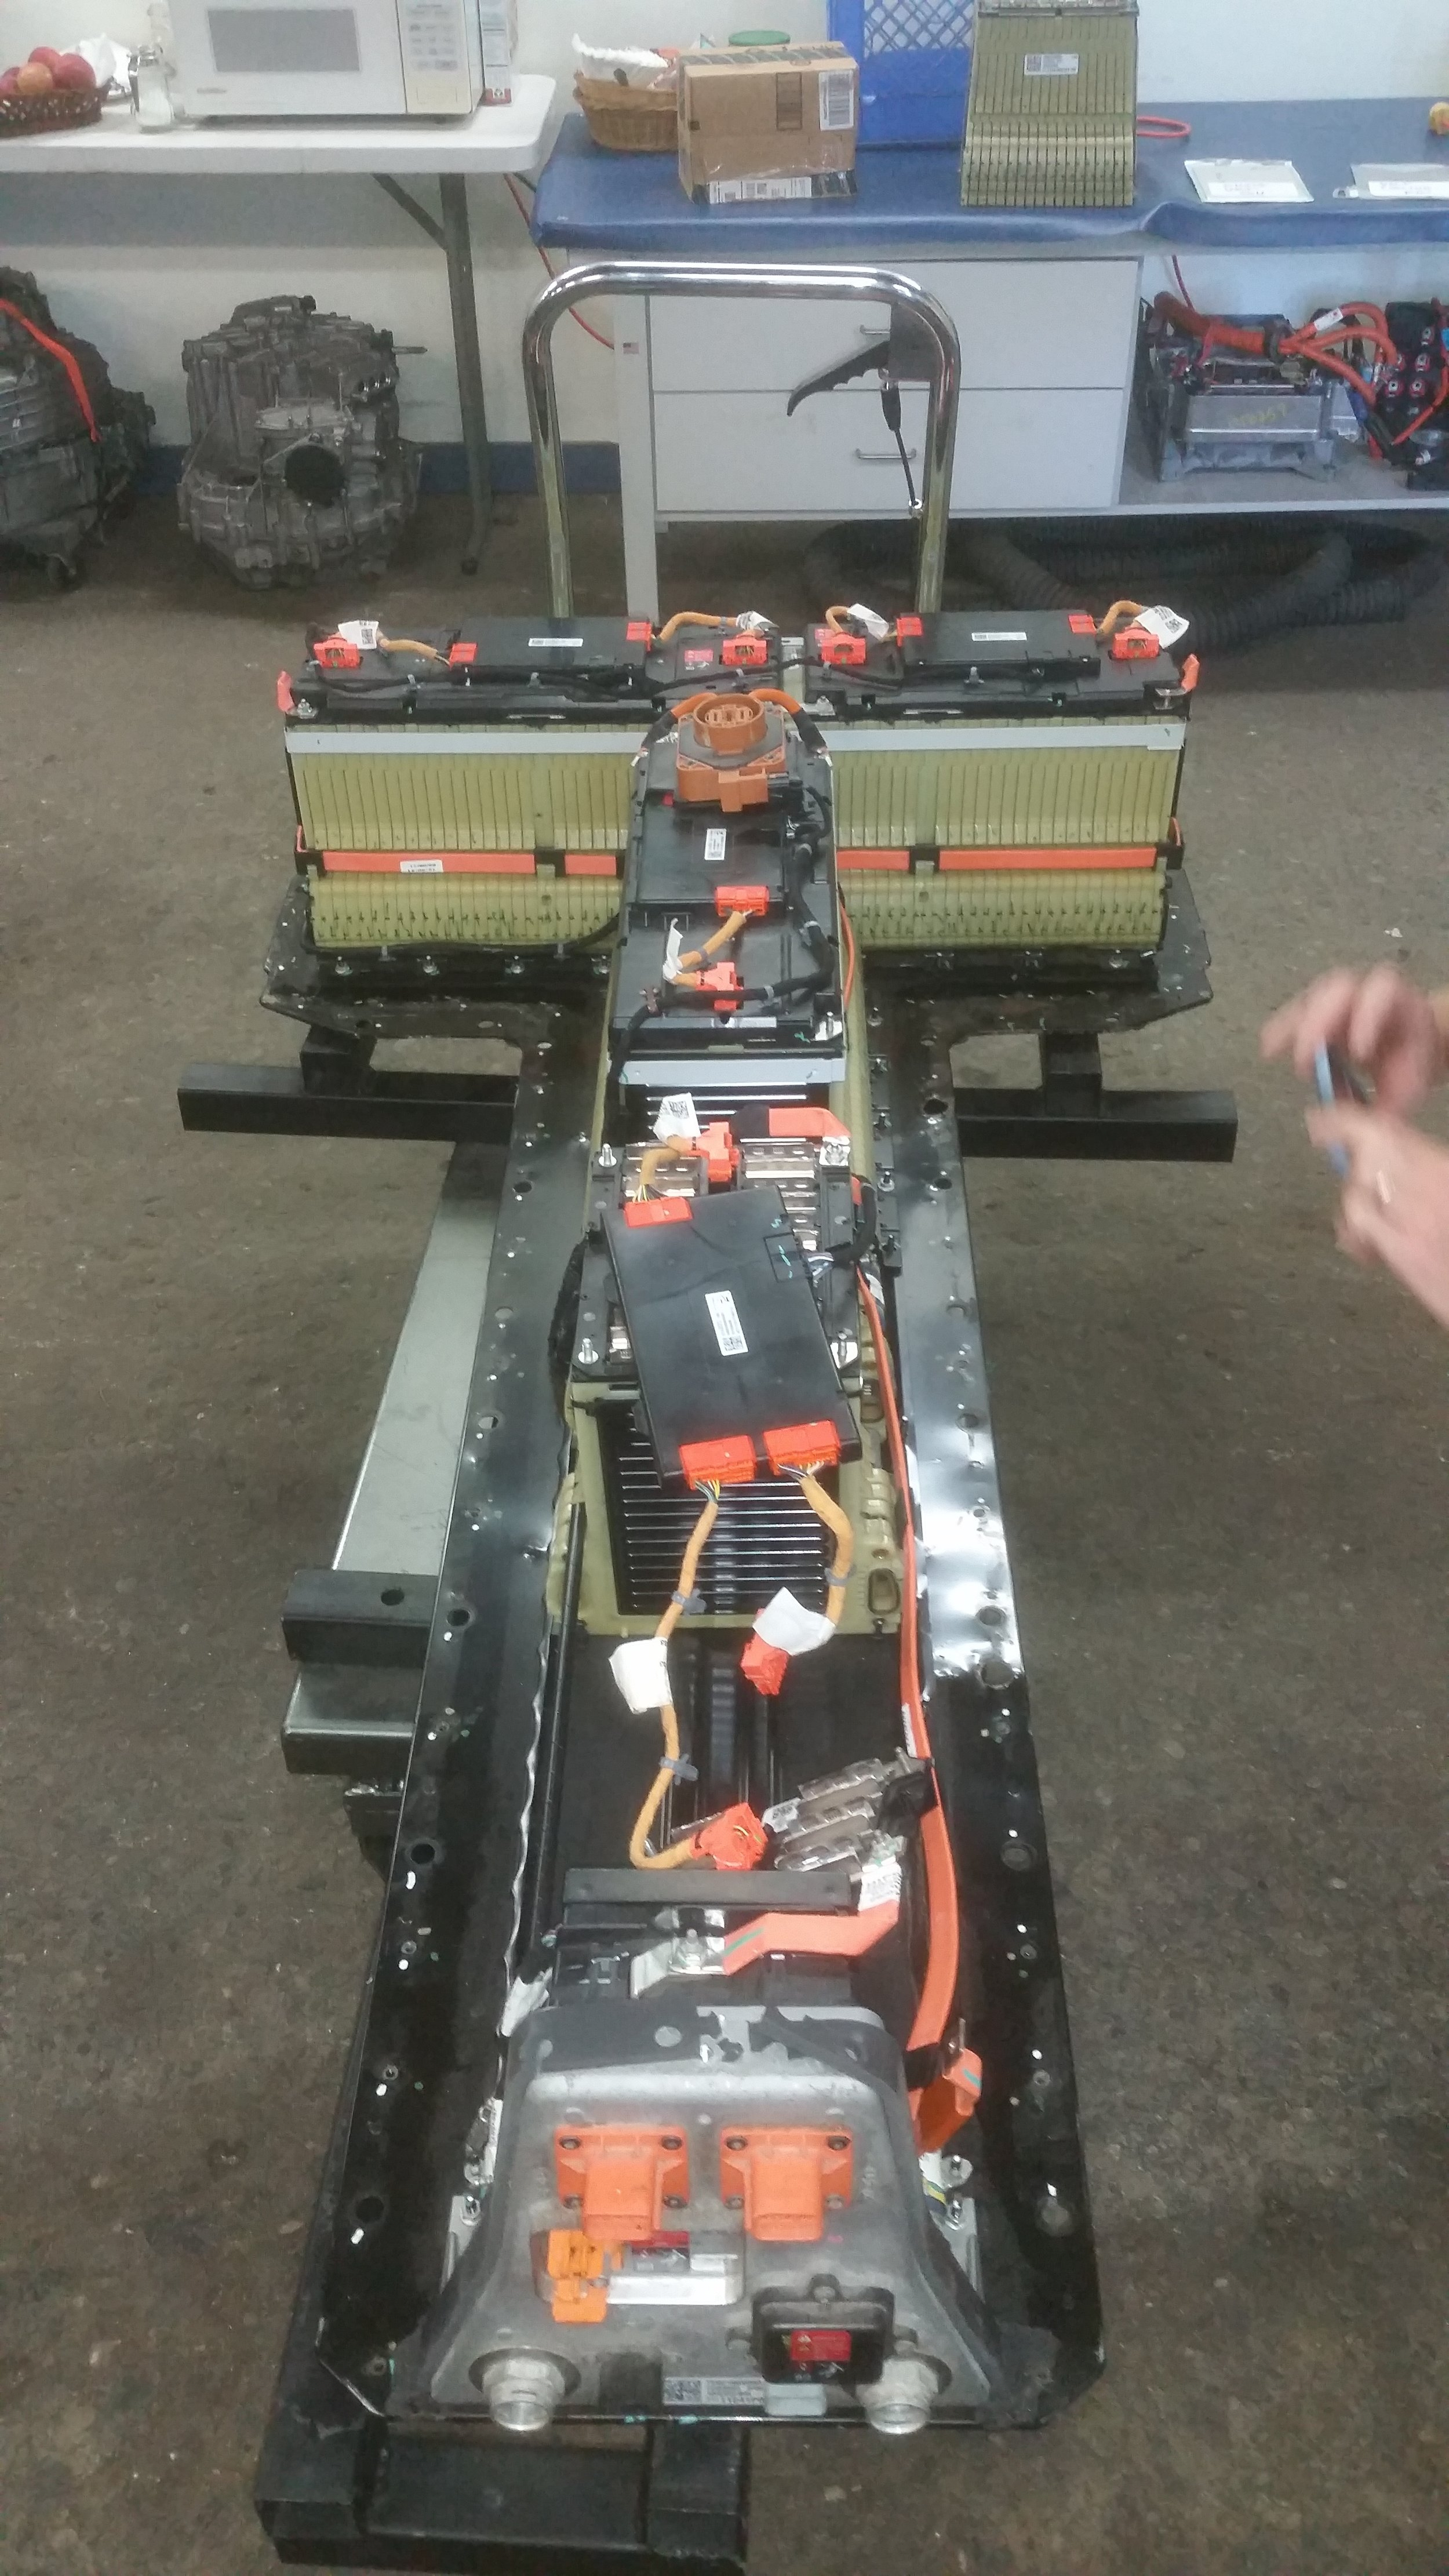 Chevy Volt battery pack